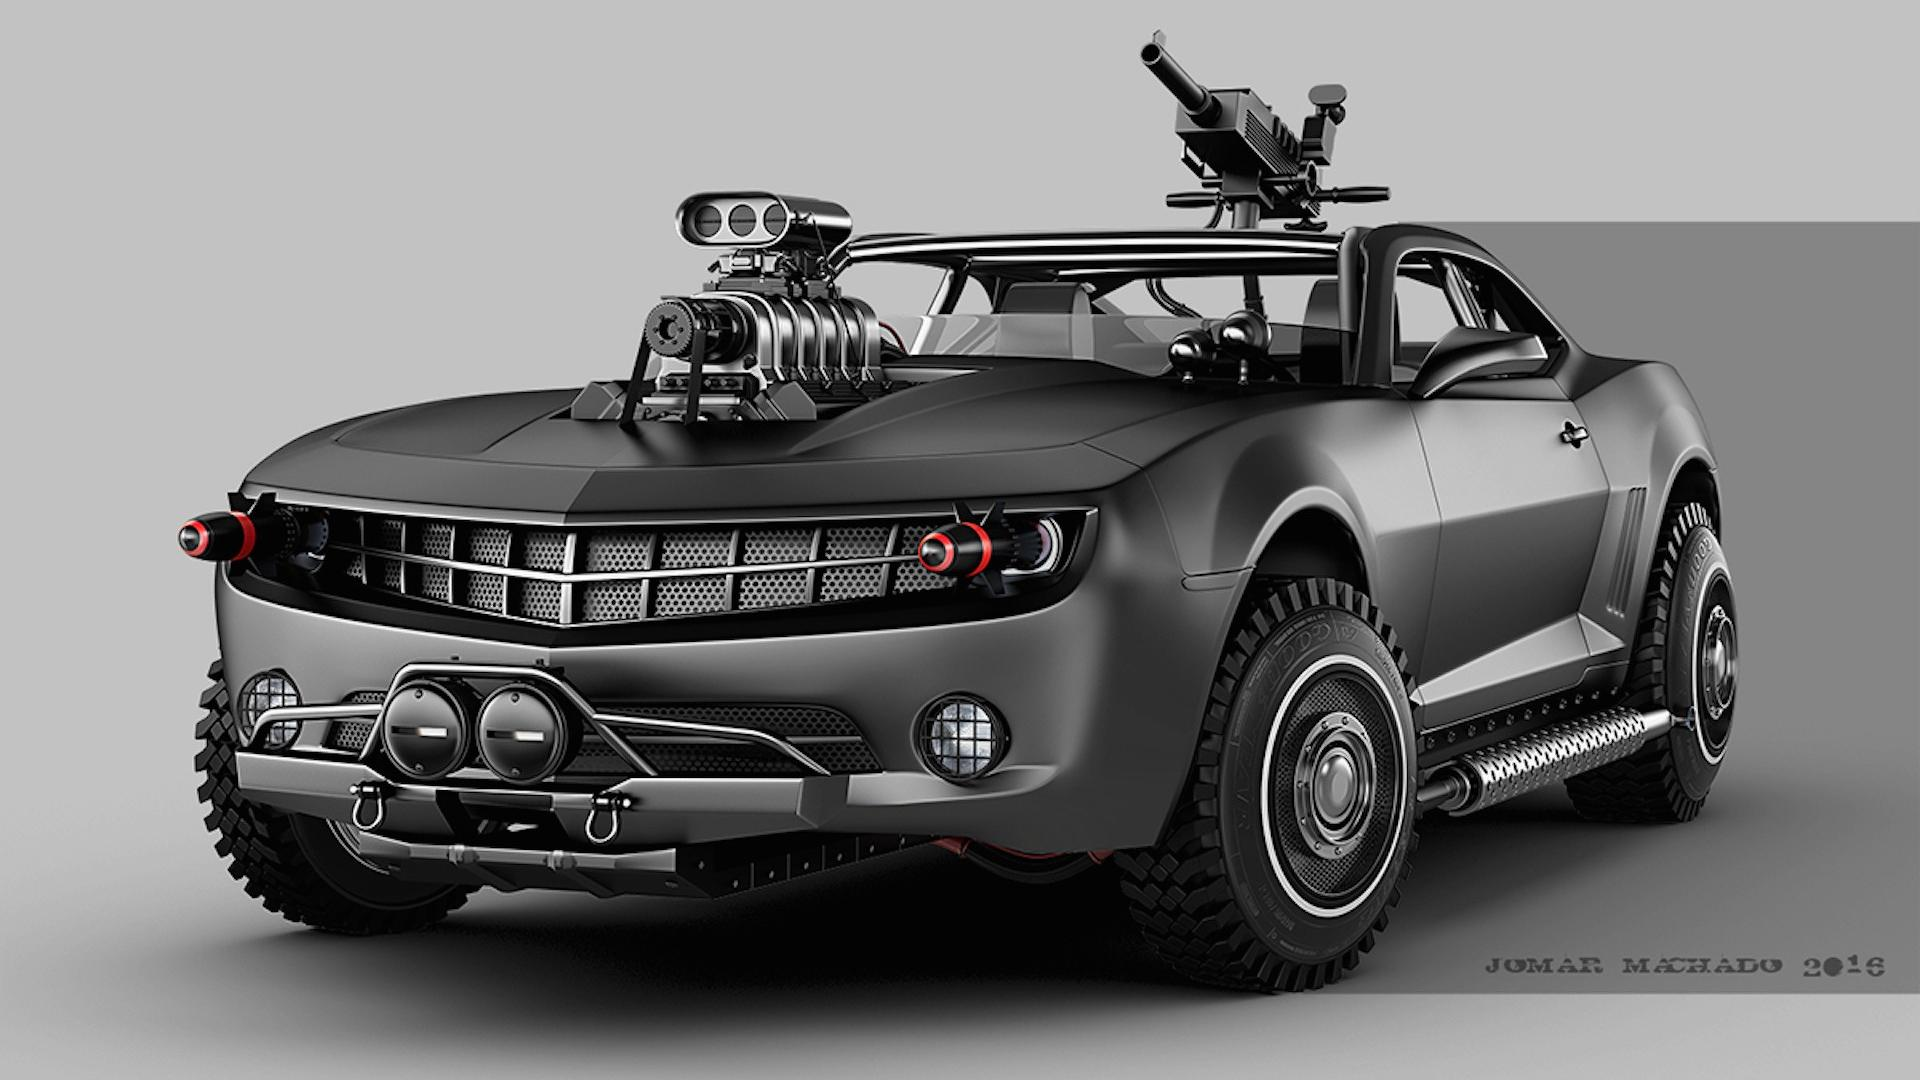 Artist Creates Crazy Post Apocalyptic Hovercraft Cars 65 Images